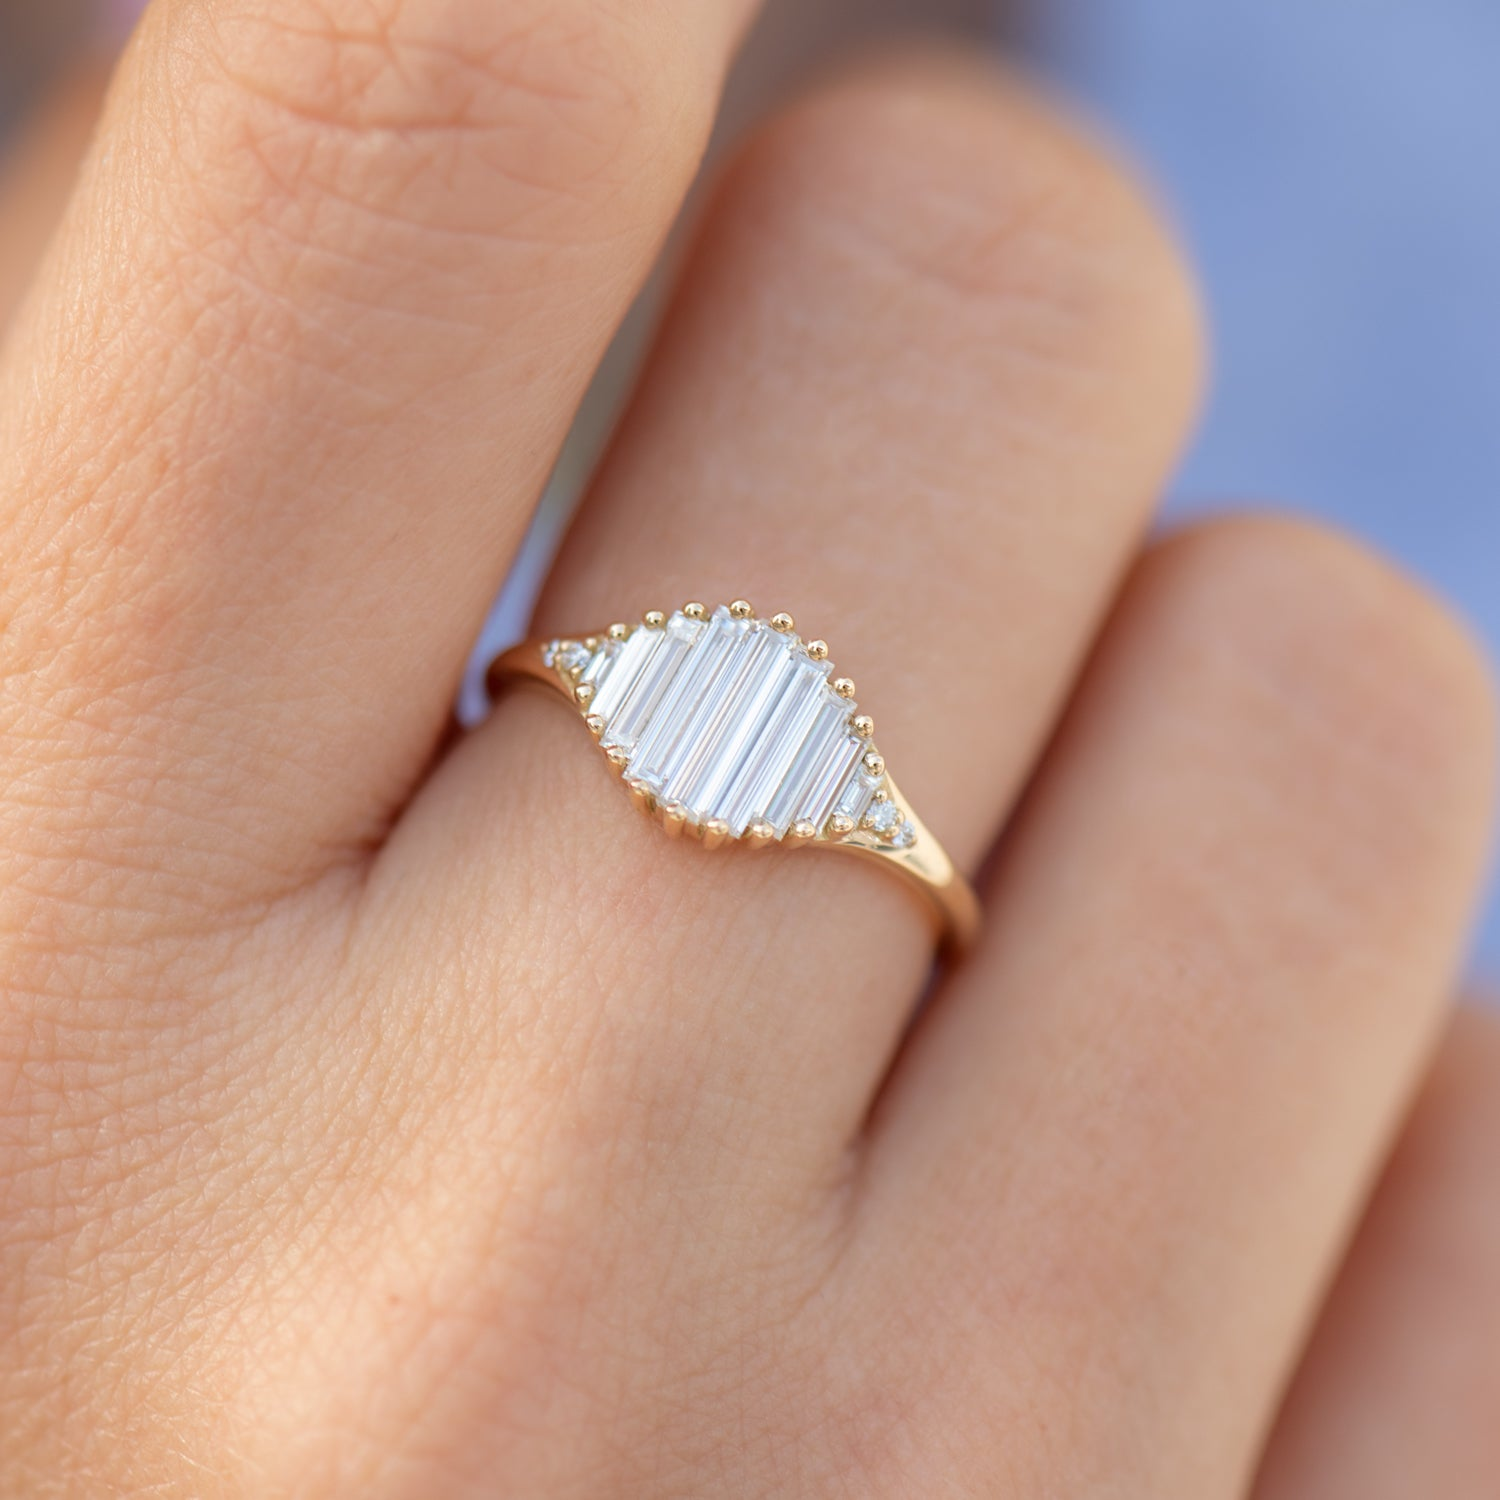 Deco-Engagement-Ring-with-Needle-Baguette-Diamonds-Pond-of-Light-Ring-top-shot